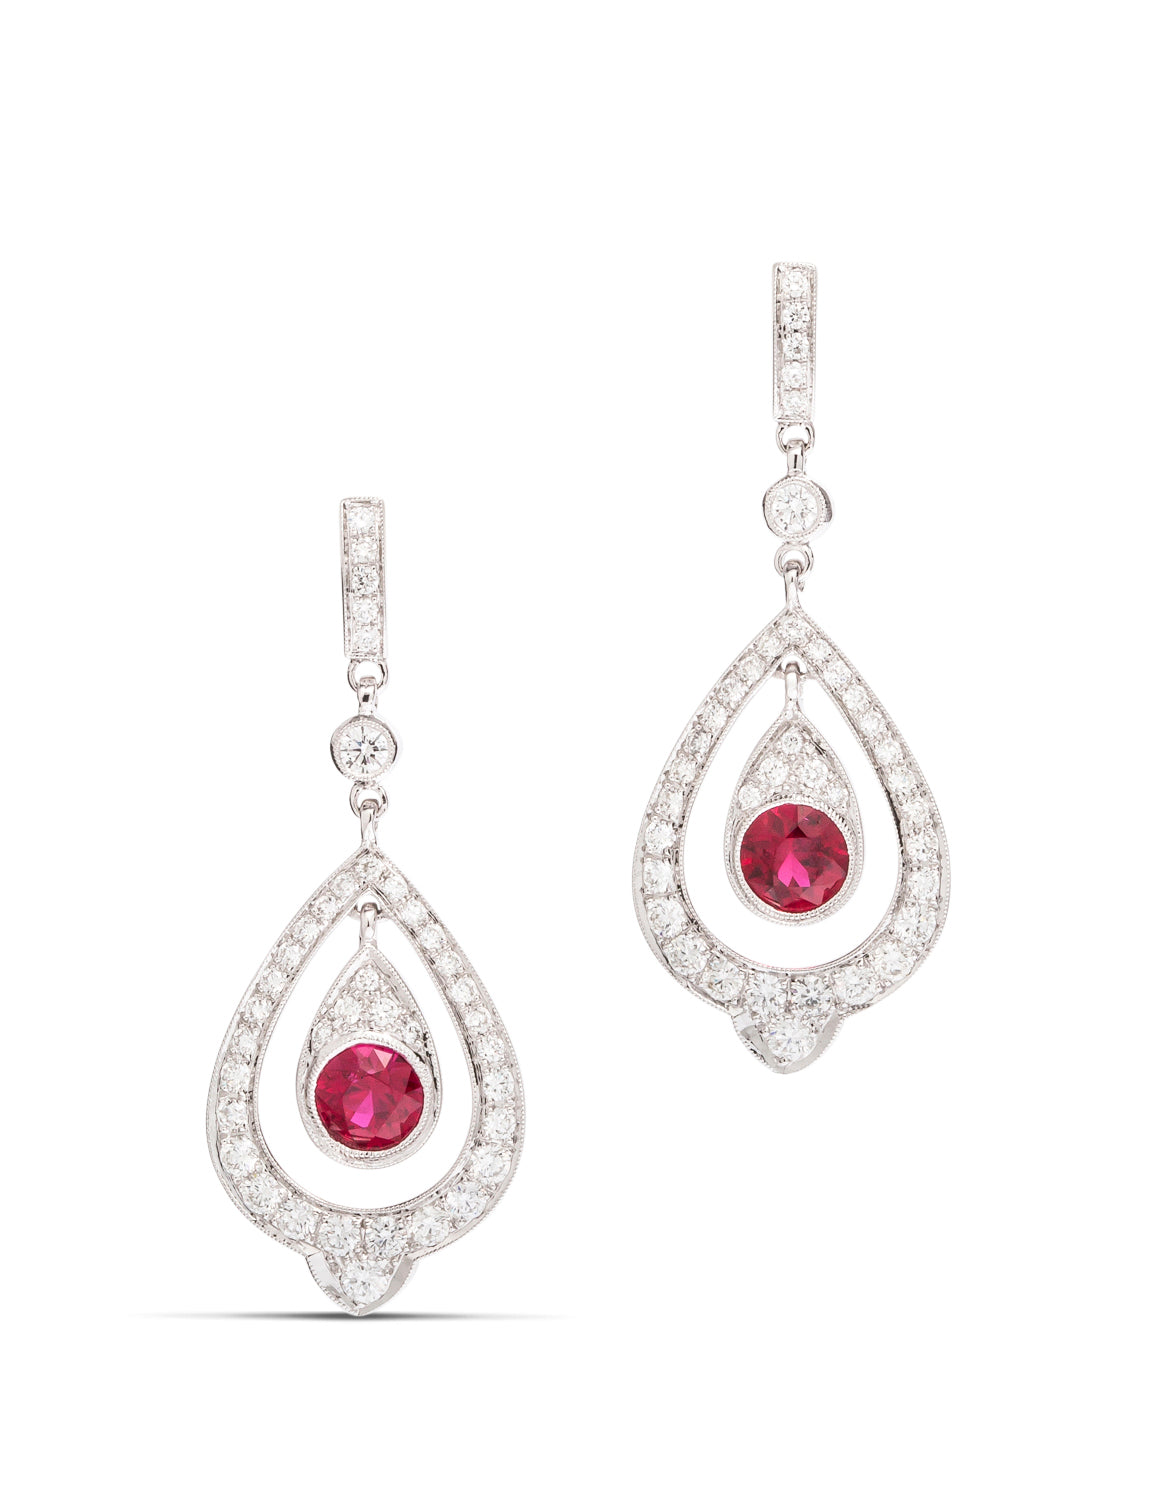 Diamond and Ruby Dangle Earrings - Charles Koll Jewellers